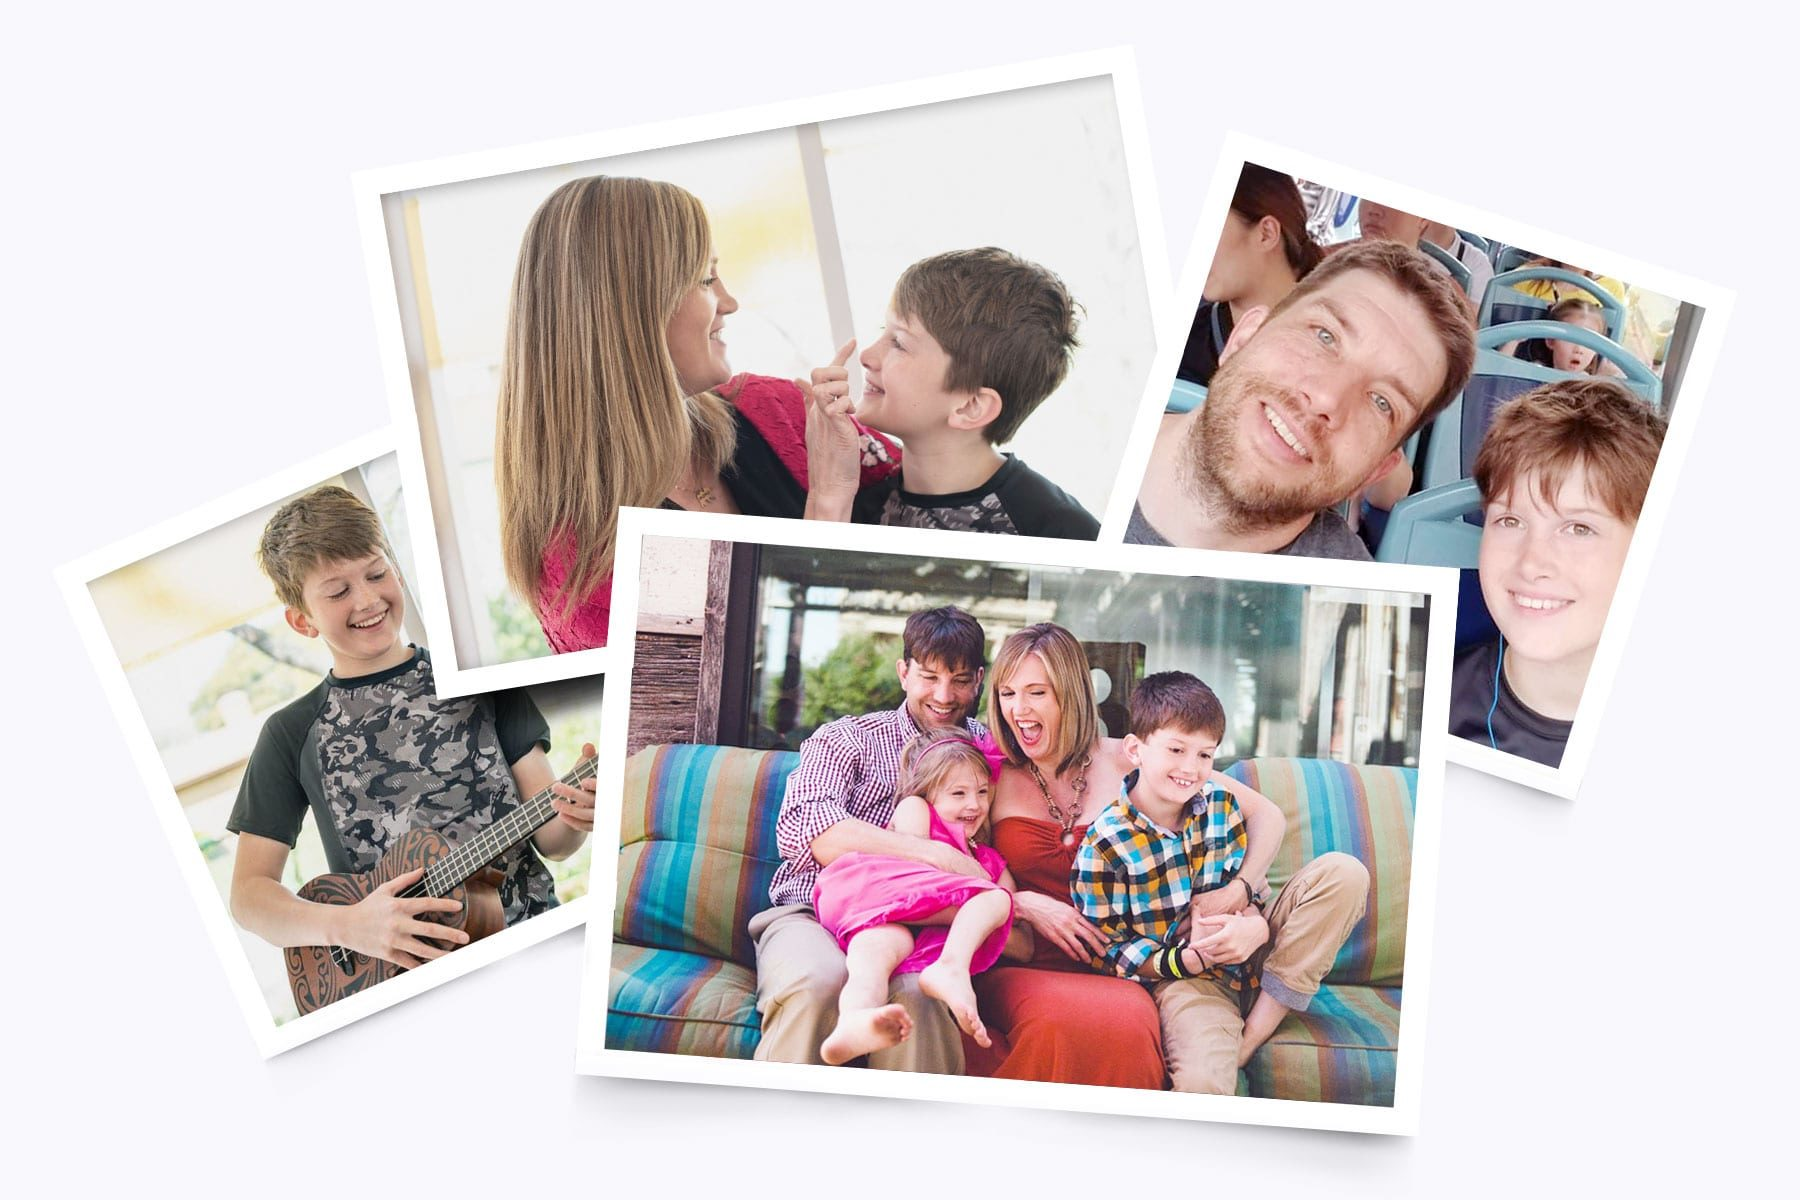 A photo collage of Amber Briggle and her family.